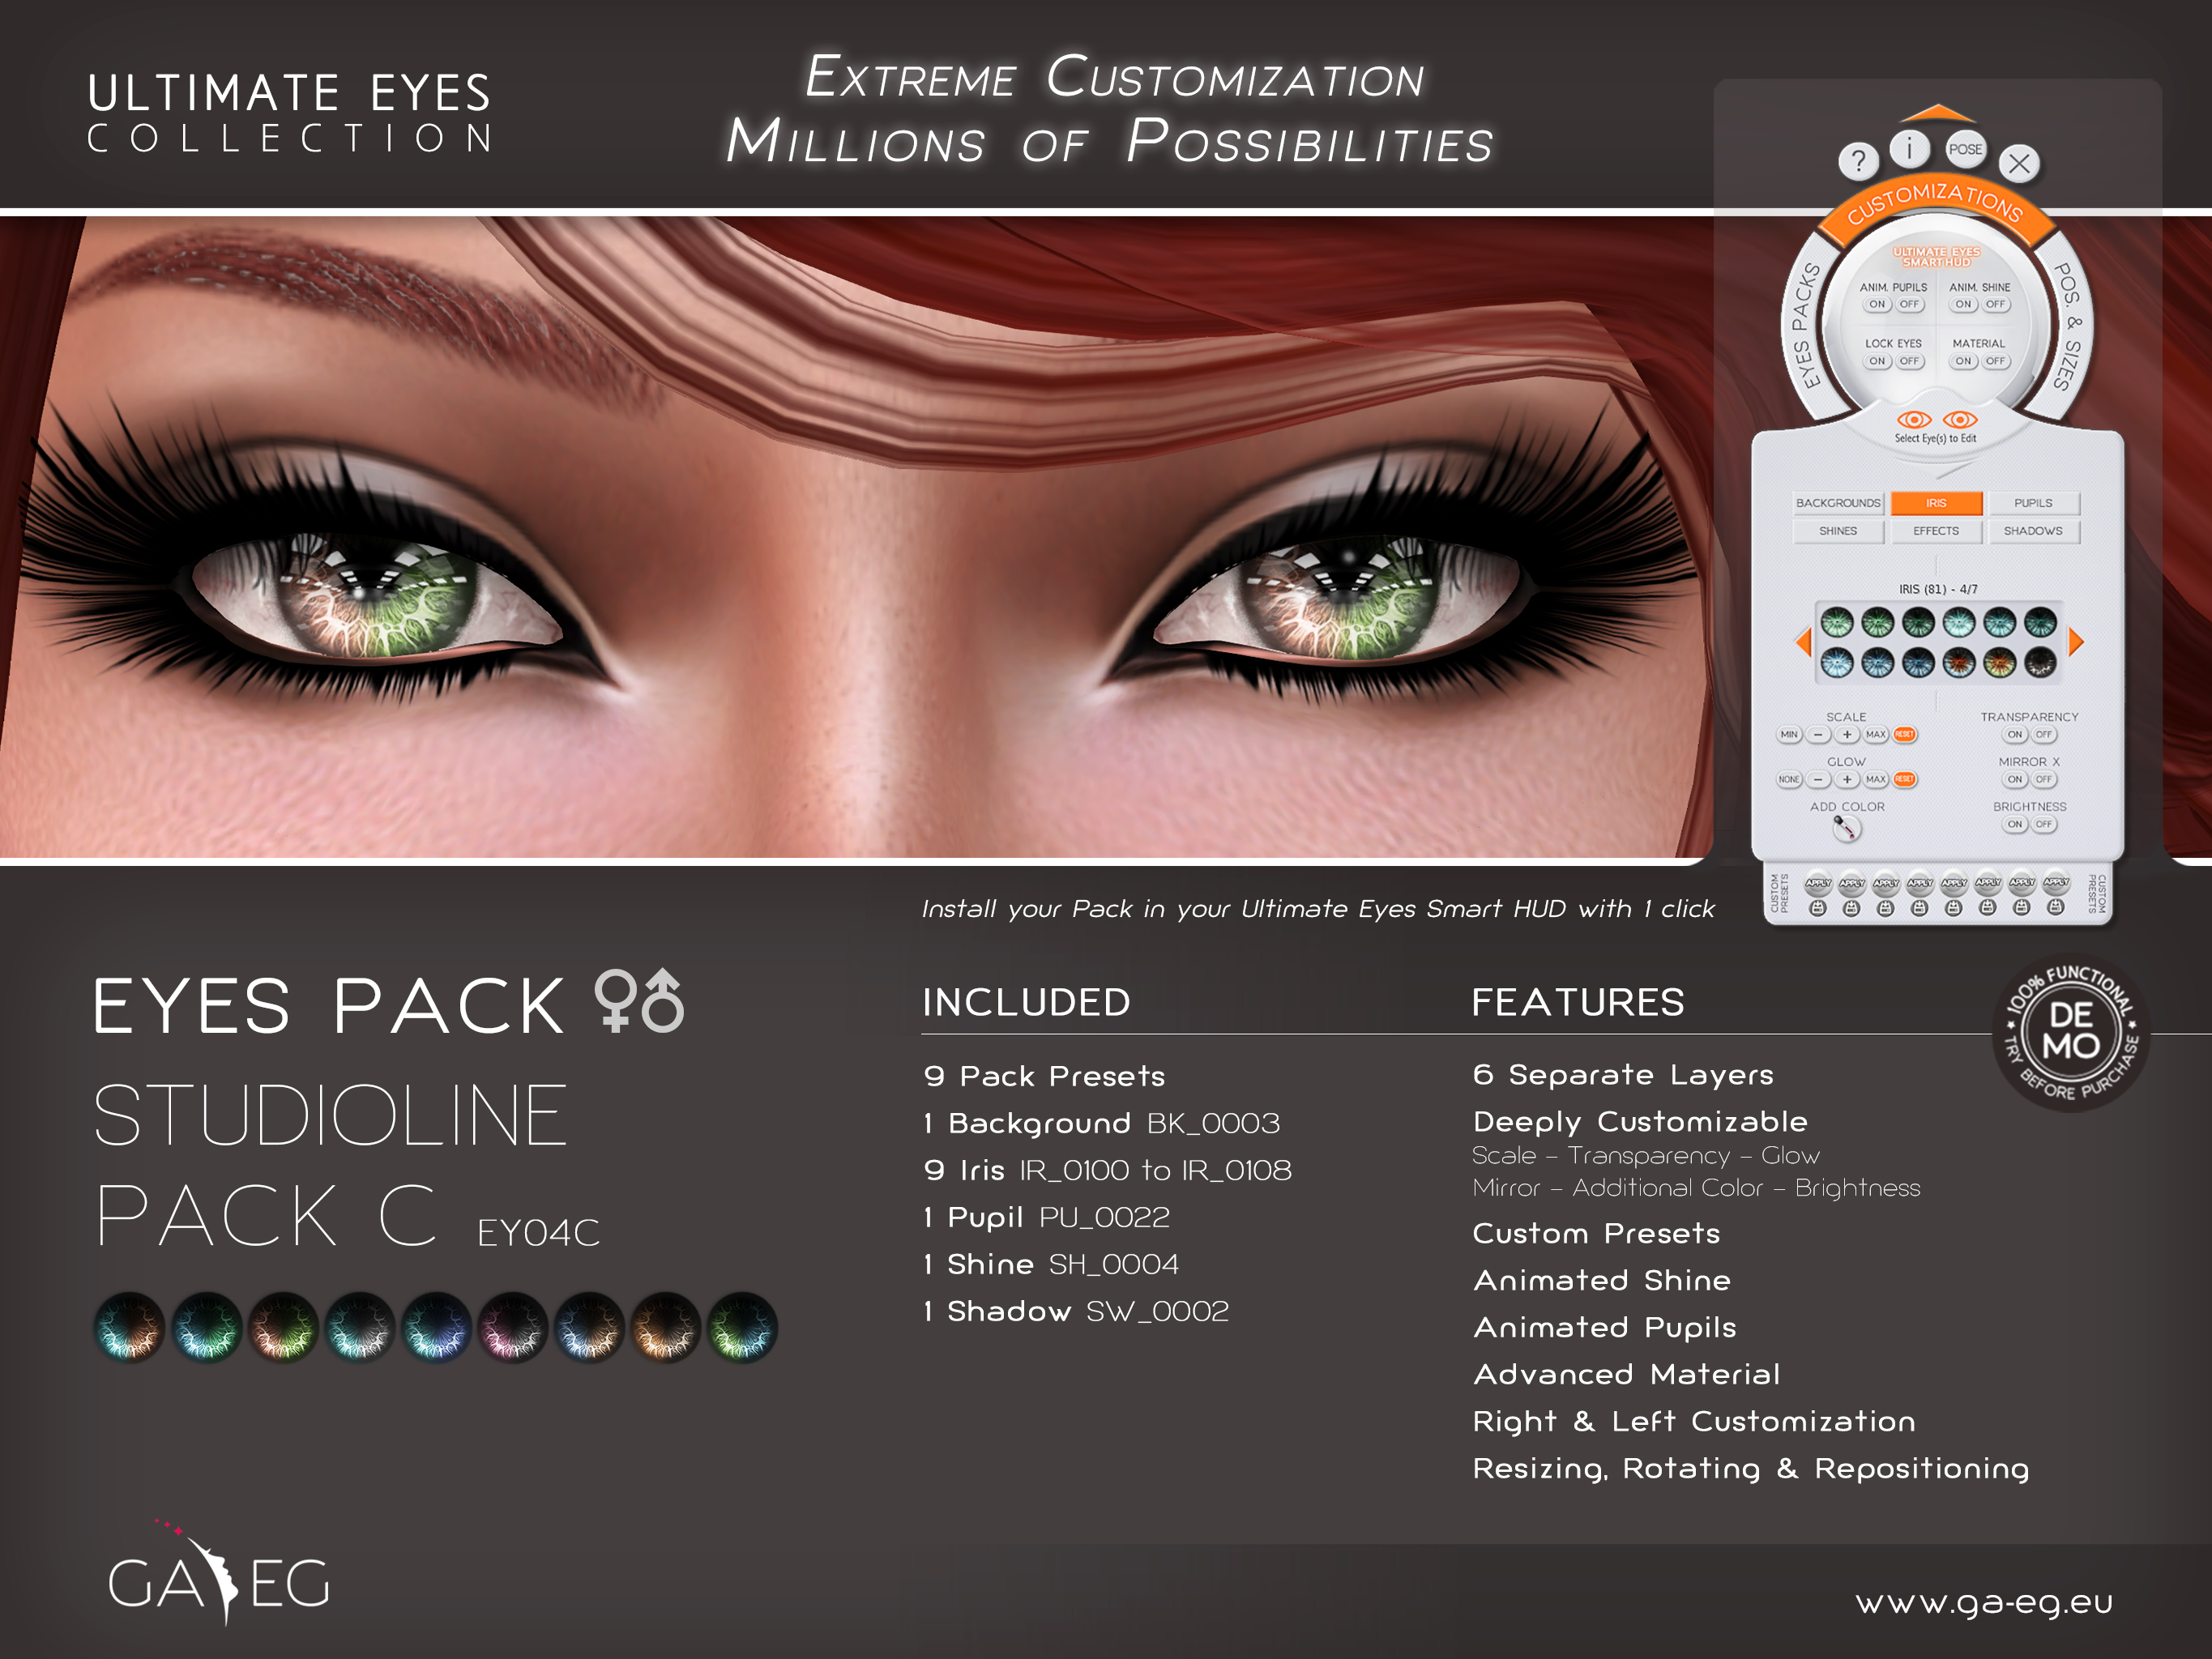 Ultimate Eyes Pack - EY04C StudioLine Pack C